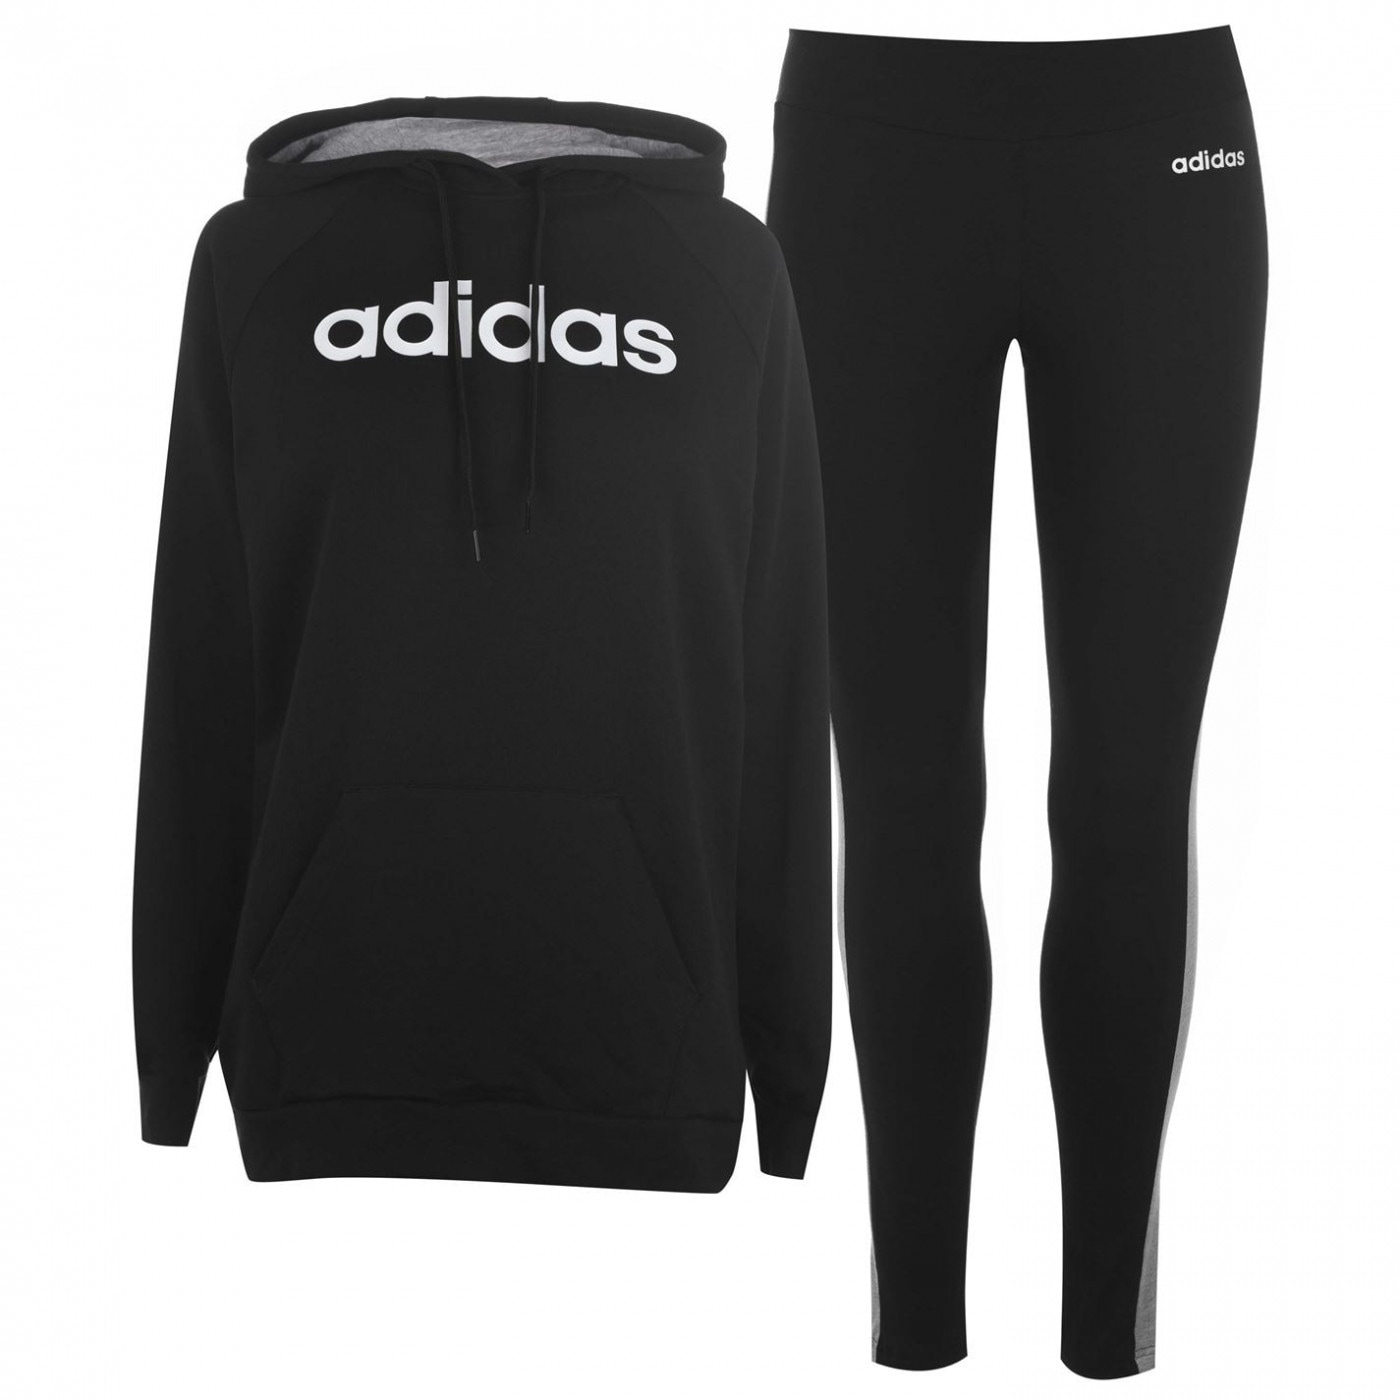 Adidas Tracksuit Set Ladies